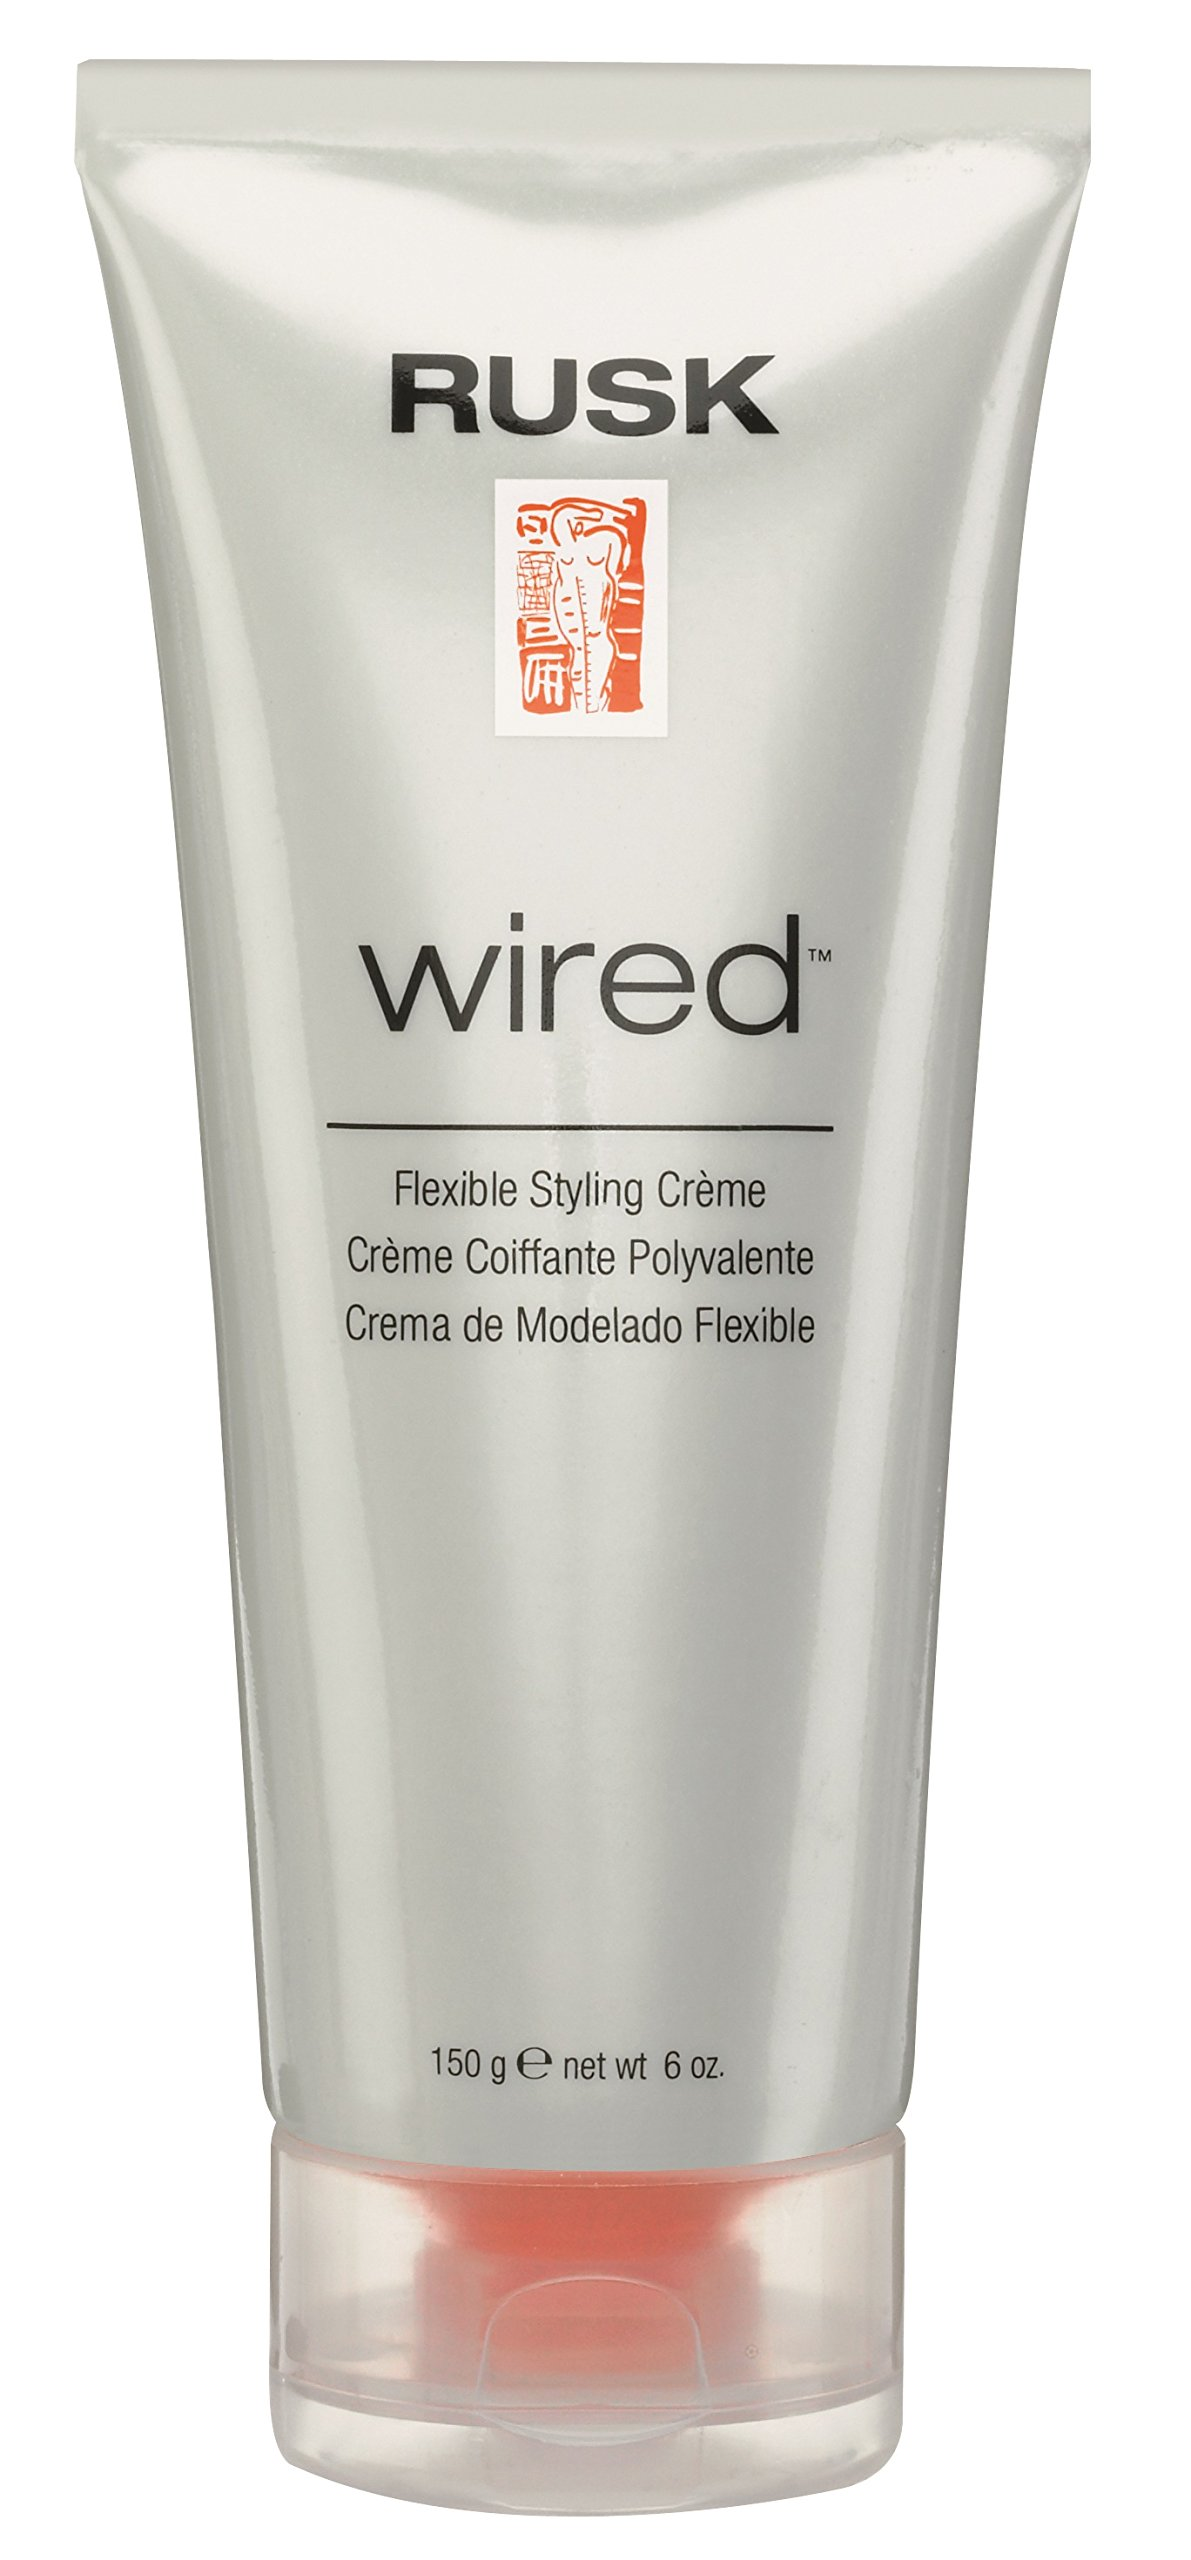 RUSK Designer Collection Wired Flexible Styling Crème, 6 fl. oz. by RUSK